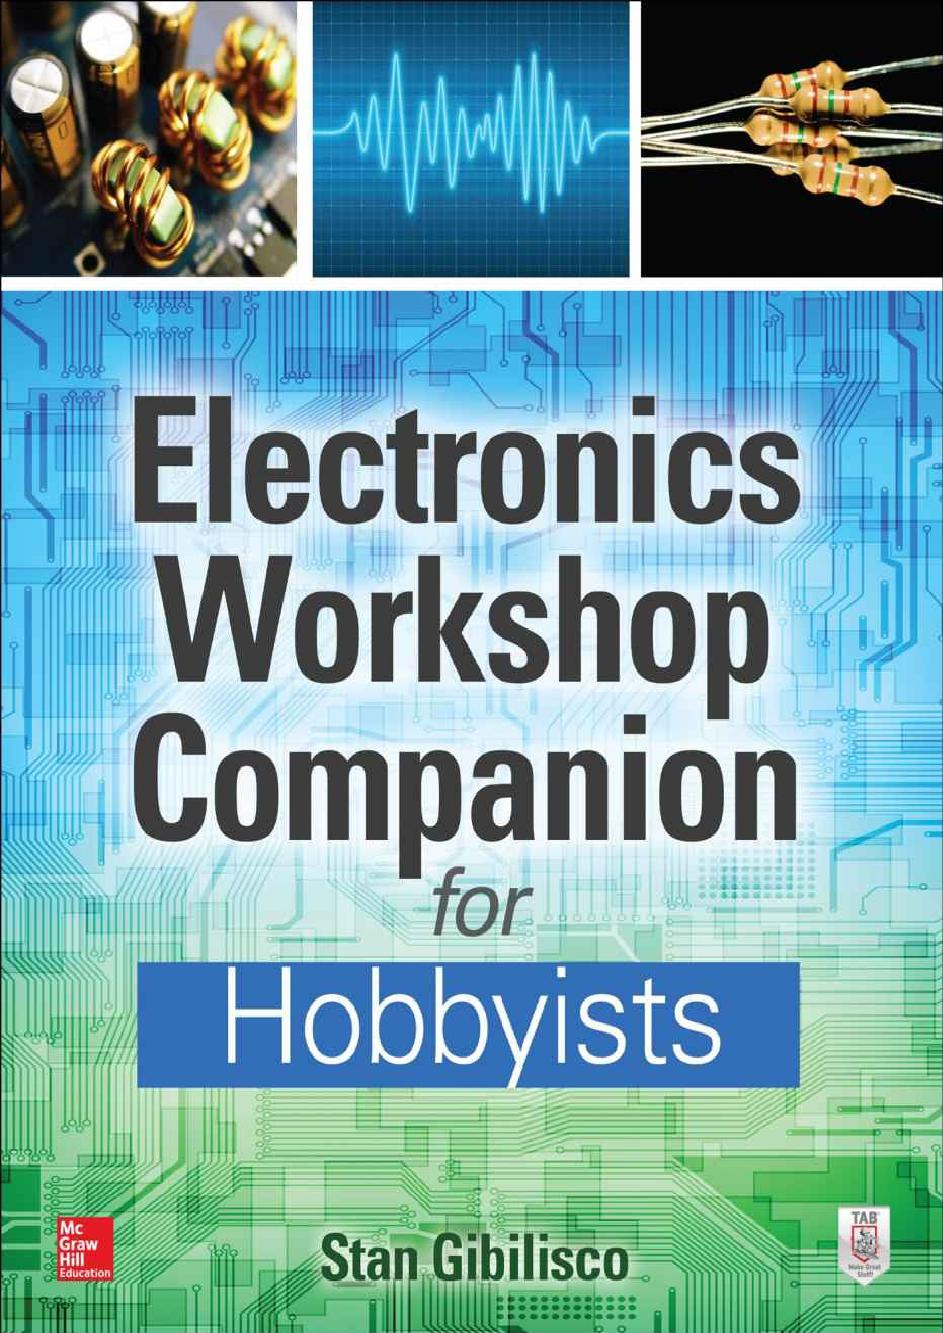 Electronics Workshop Companion for Hobbyists